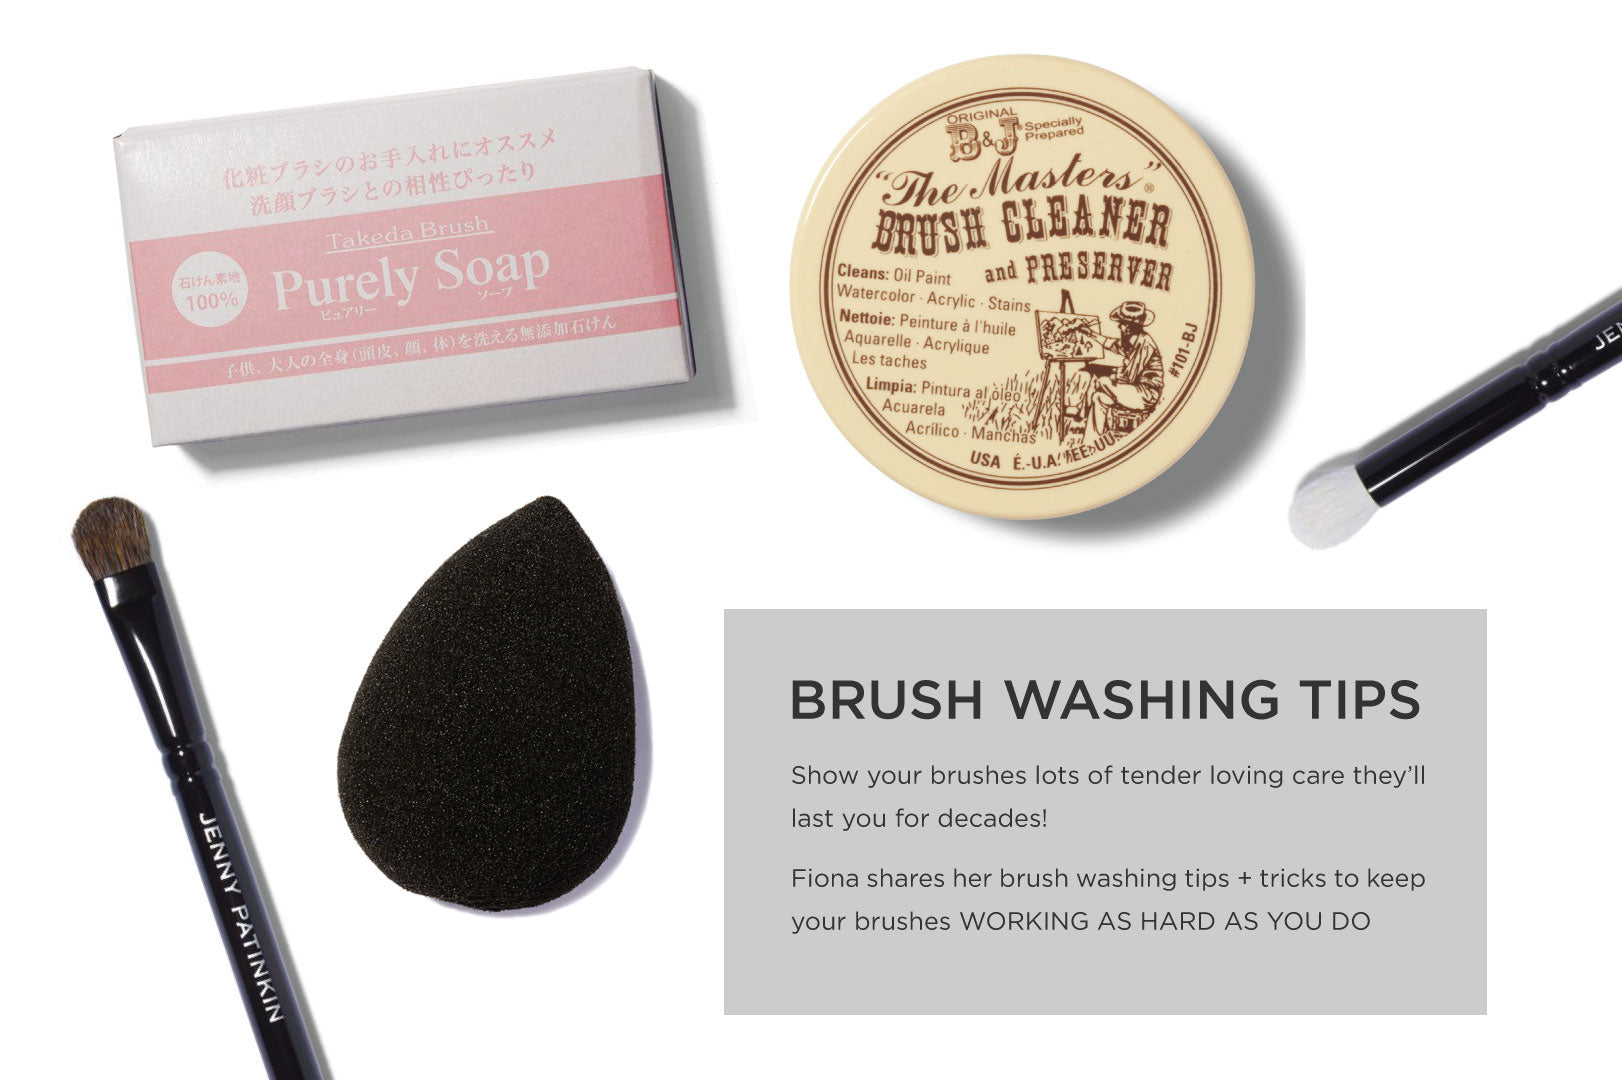 BRUSH WASHING TIPS